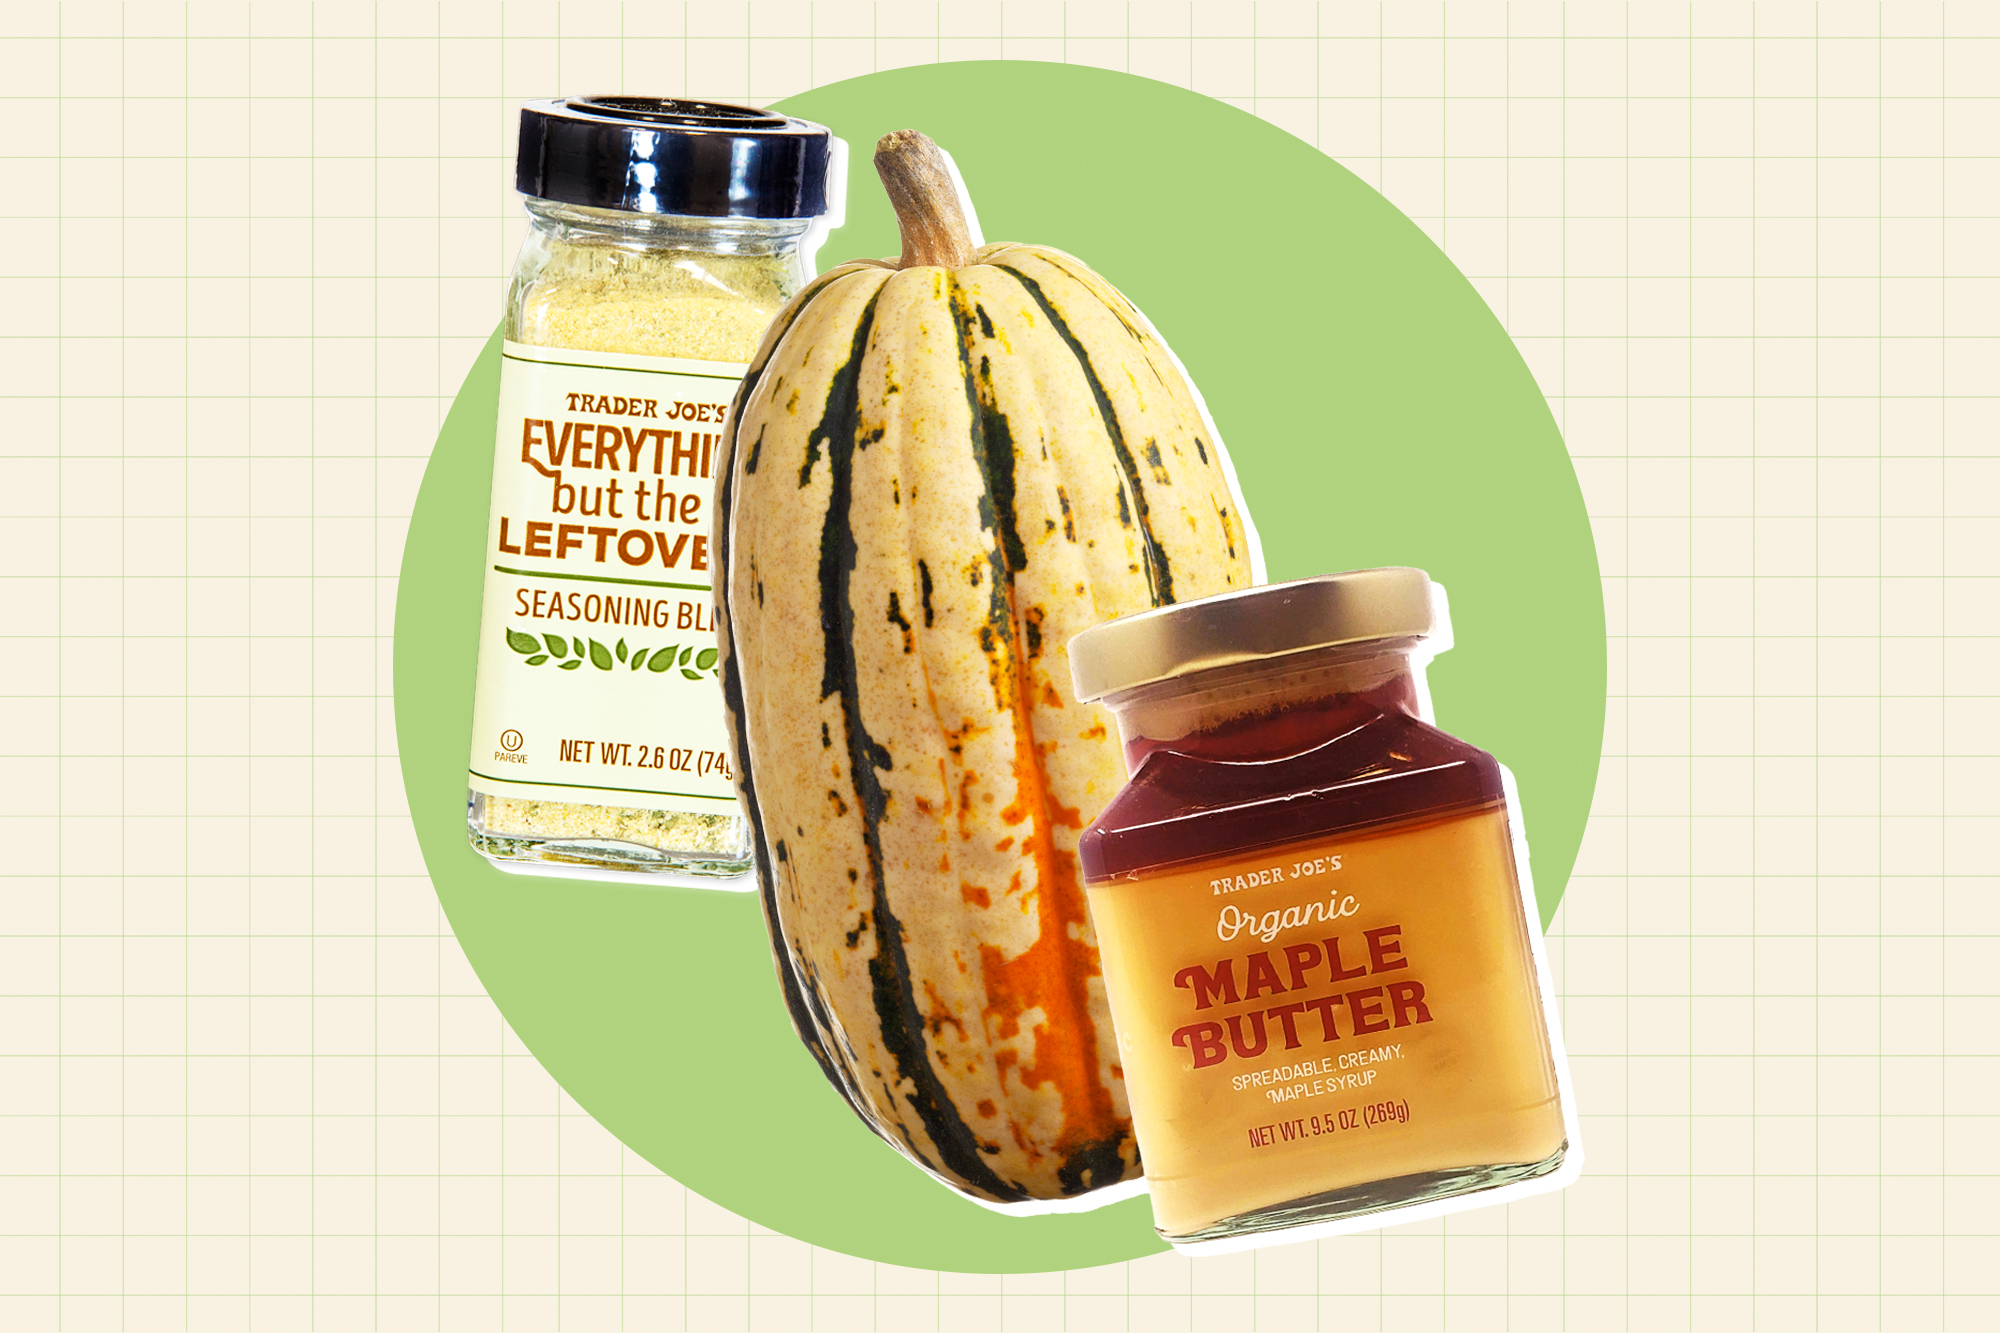 a Delicata squash Trader Joe's Maple Butter and Everything but the Leftovers on a designed background